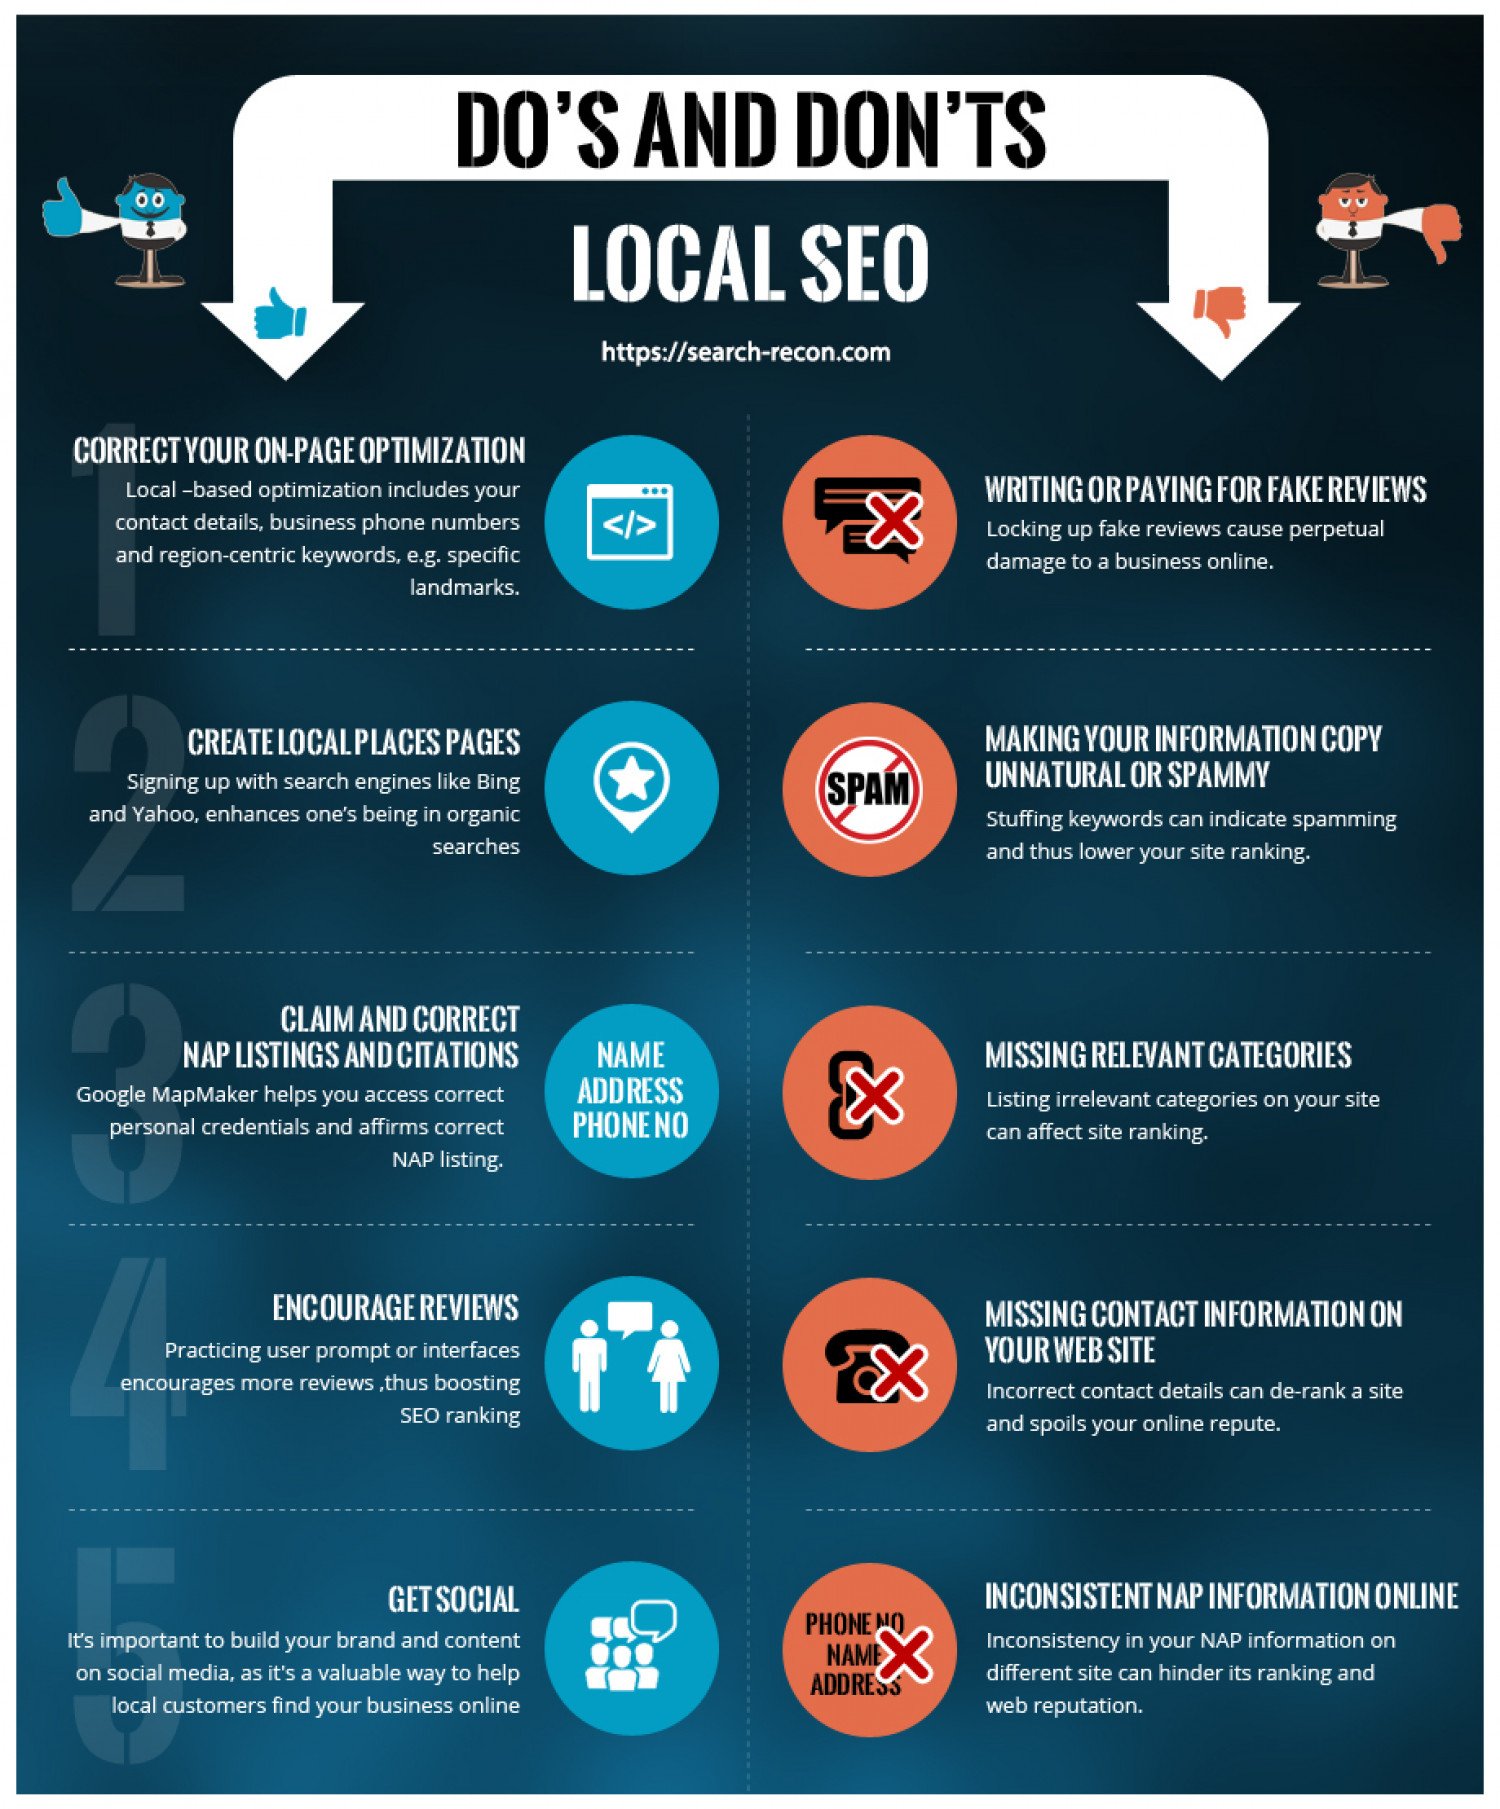 The Do's and Don'ts of Local SEO Infographic